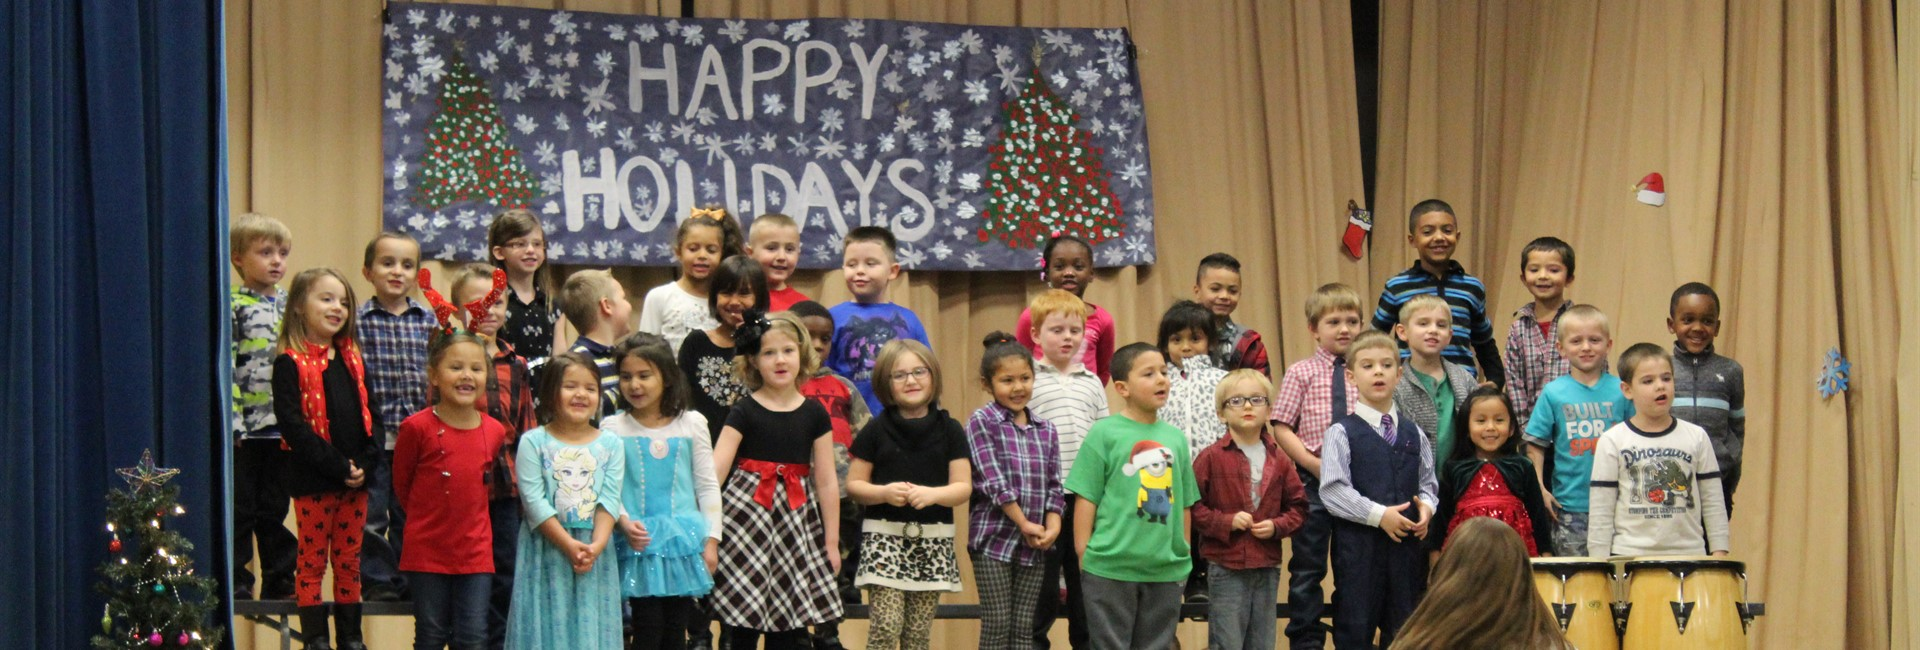 Students at Glenn O. Swing perform for the holiday program.